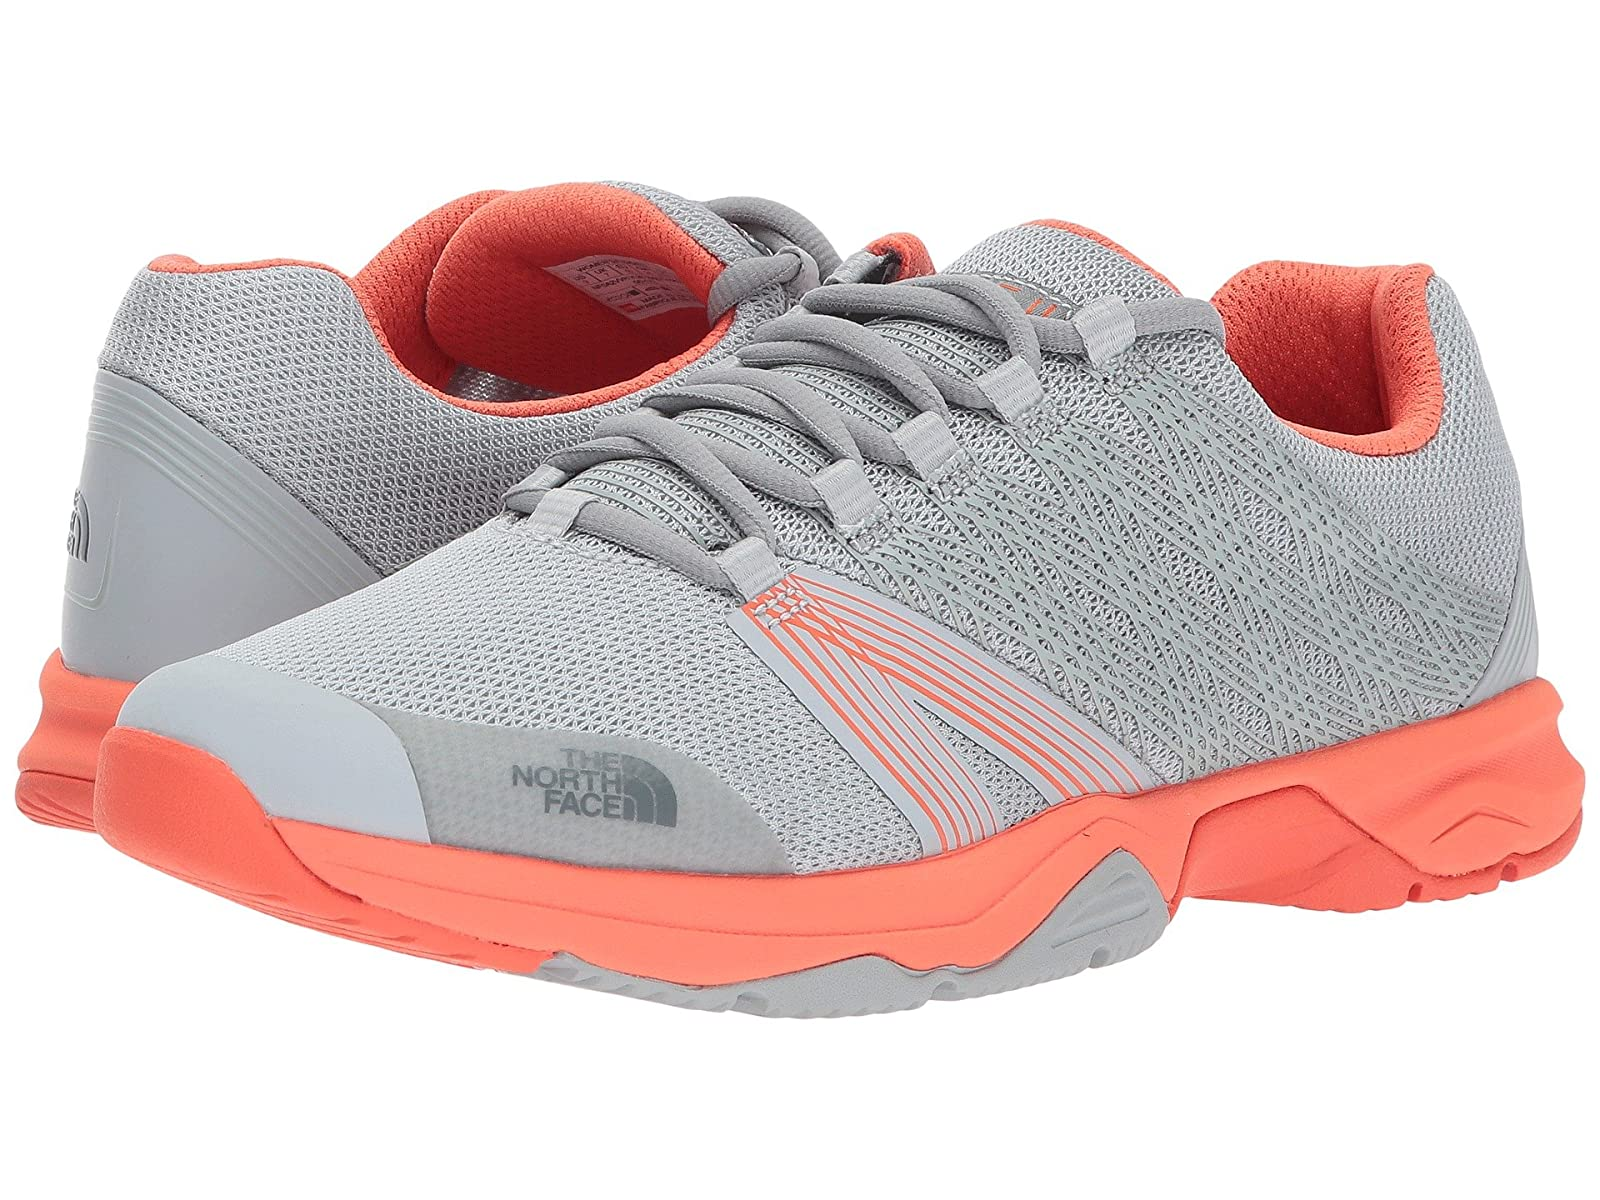 The North Face Litewave Ampere IICheap and distinctive eye-catching shoes